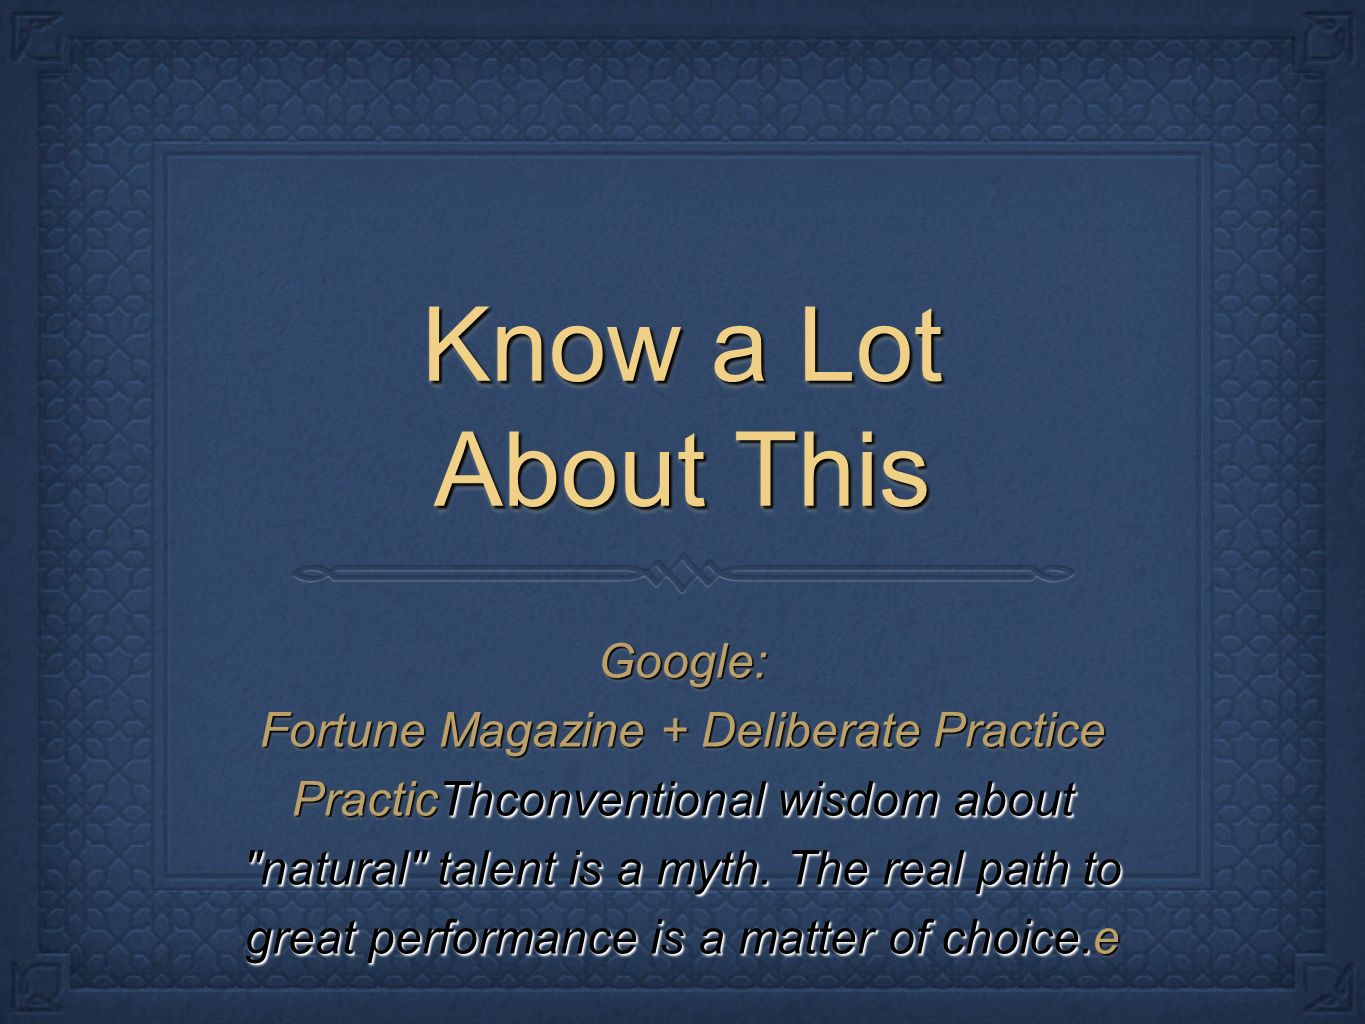 Know a Lot About This Google: Fortune Magazine + Deliberate Practice PracticThconventional wisdom about natural talent is a myth.